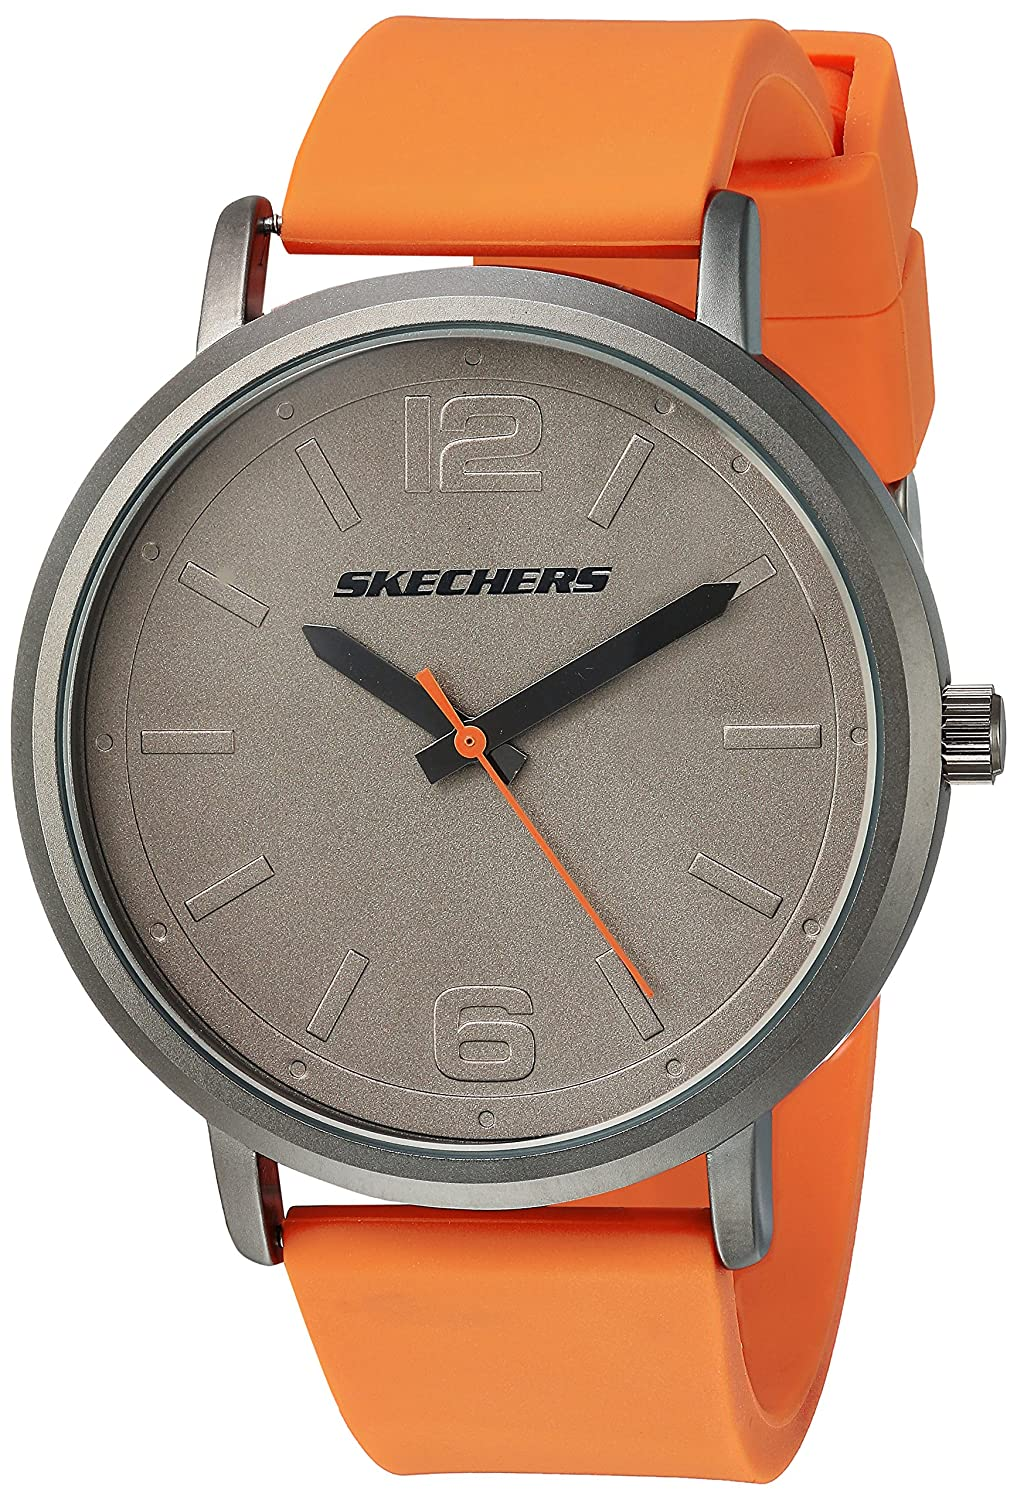 Amazon.com: Skechers Mens Ardmore Quartz Metal and Silicone Casual Watch Color: Grey, Orange (Model: SR5048): Watches